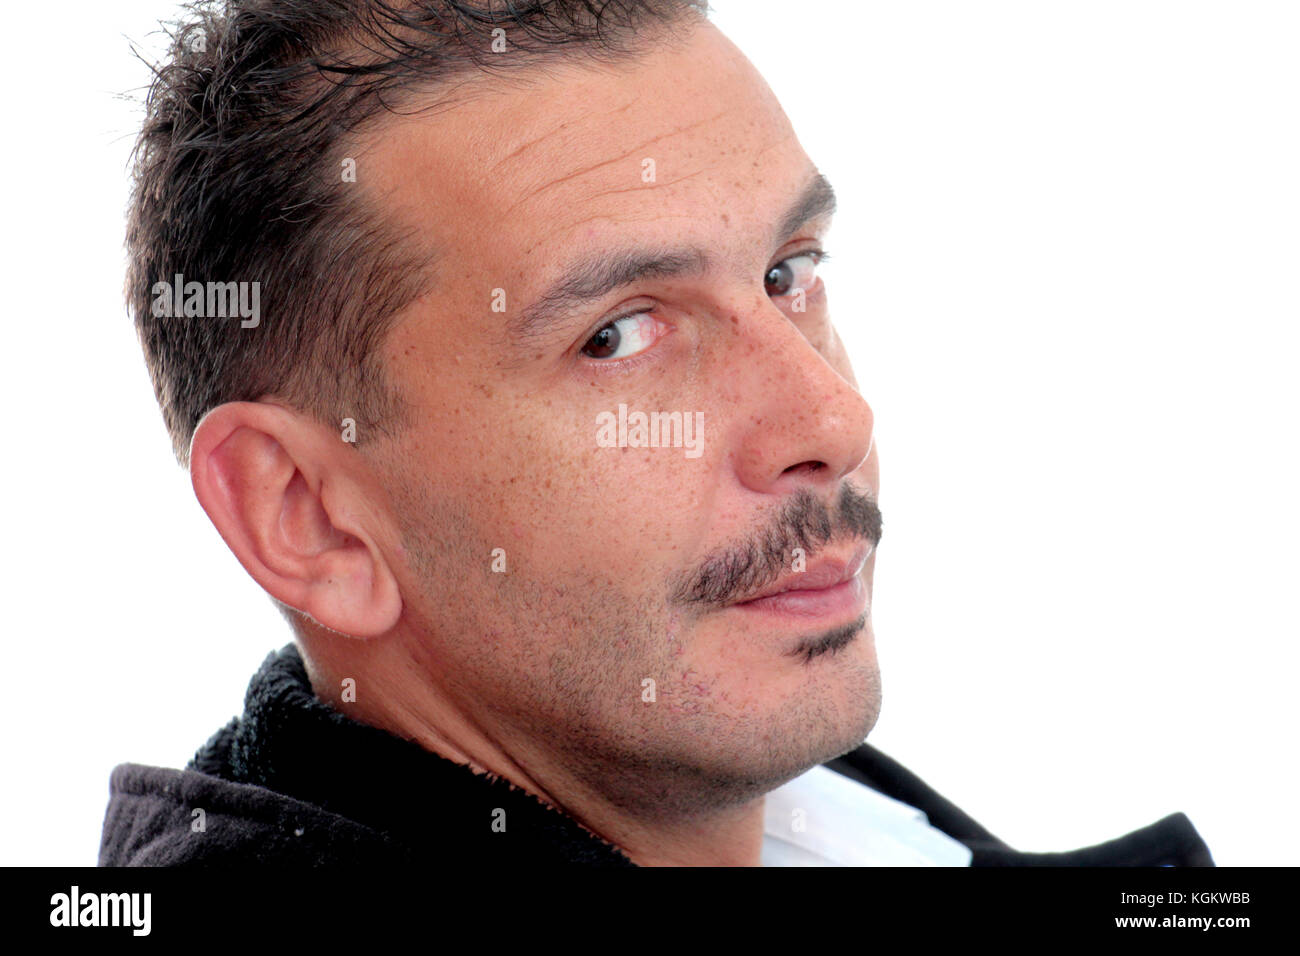 Portrait of an adult man with mustaches on white background.movember concept - Stock Image